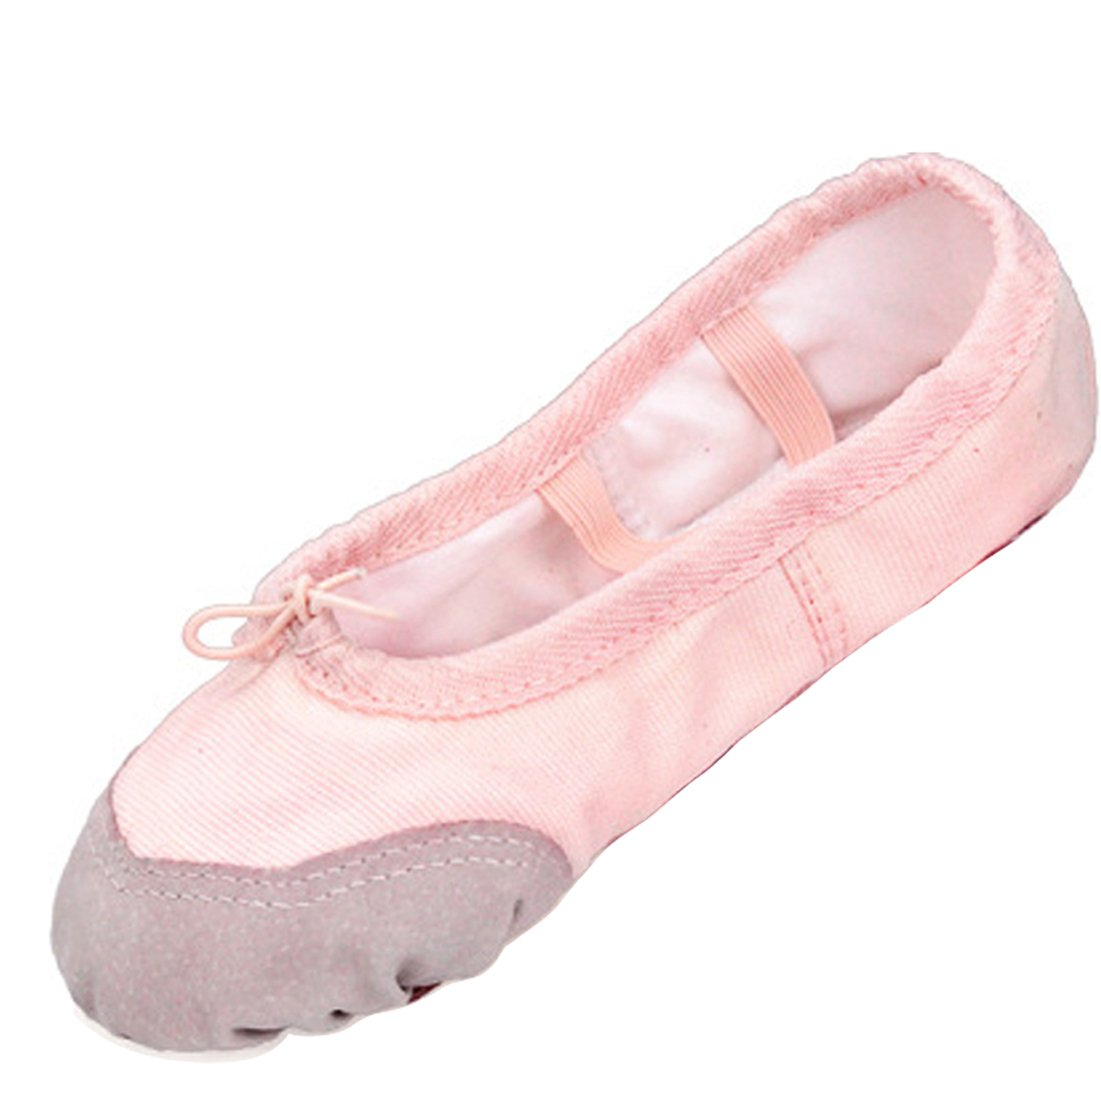 Gaorui Kids Girls Ballet Dance Shoes Pointe Slippers Gymnastics Dancewear Sneakers New